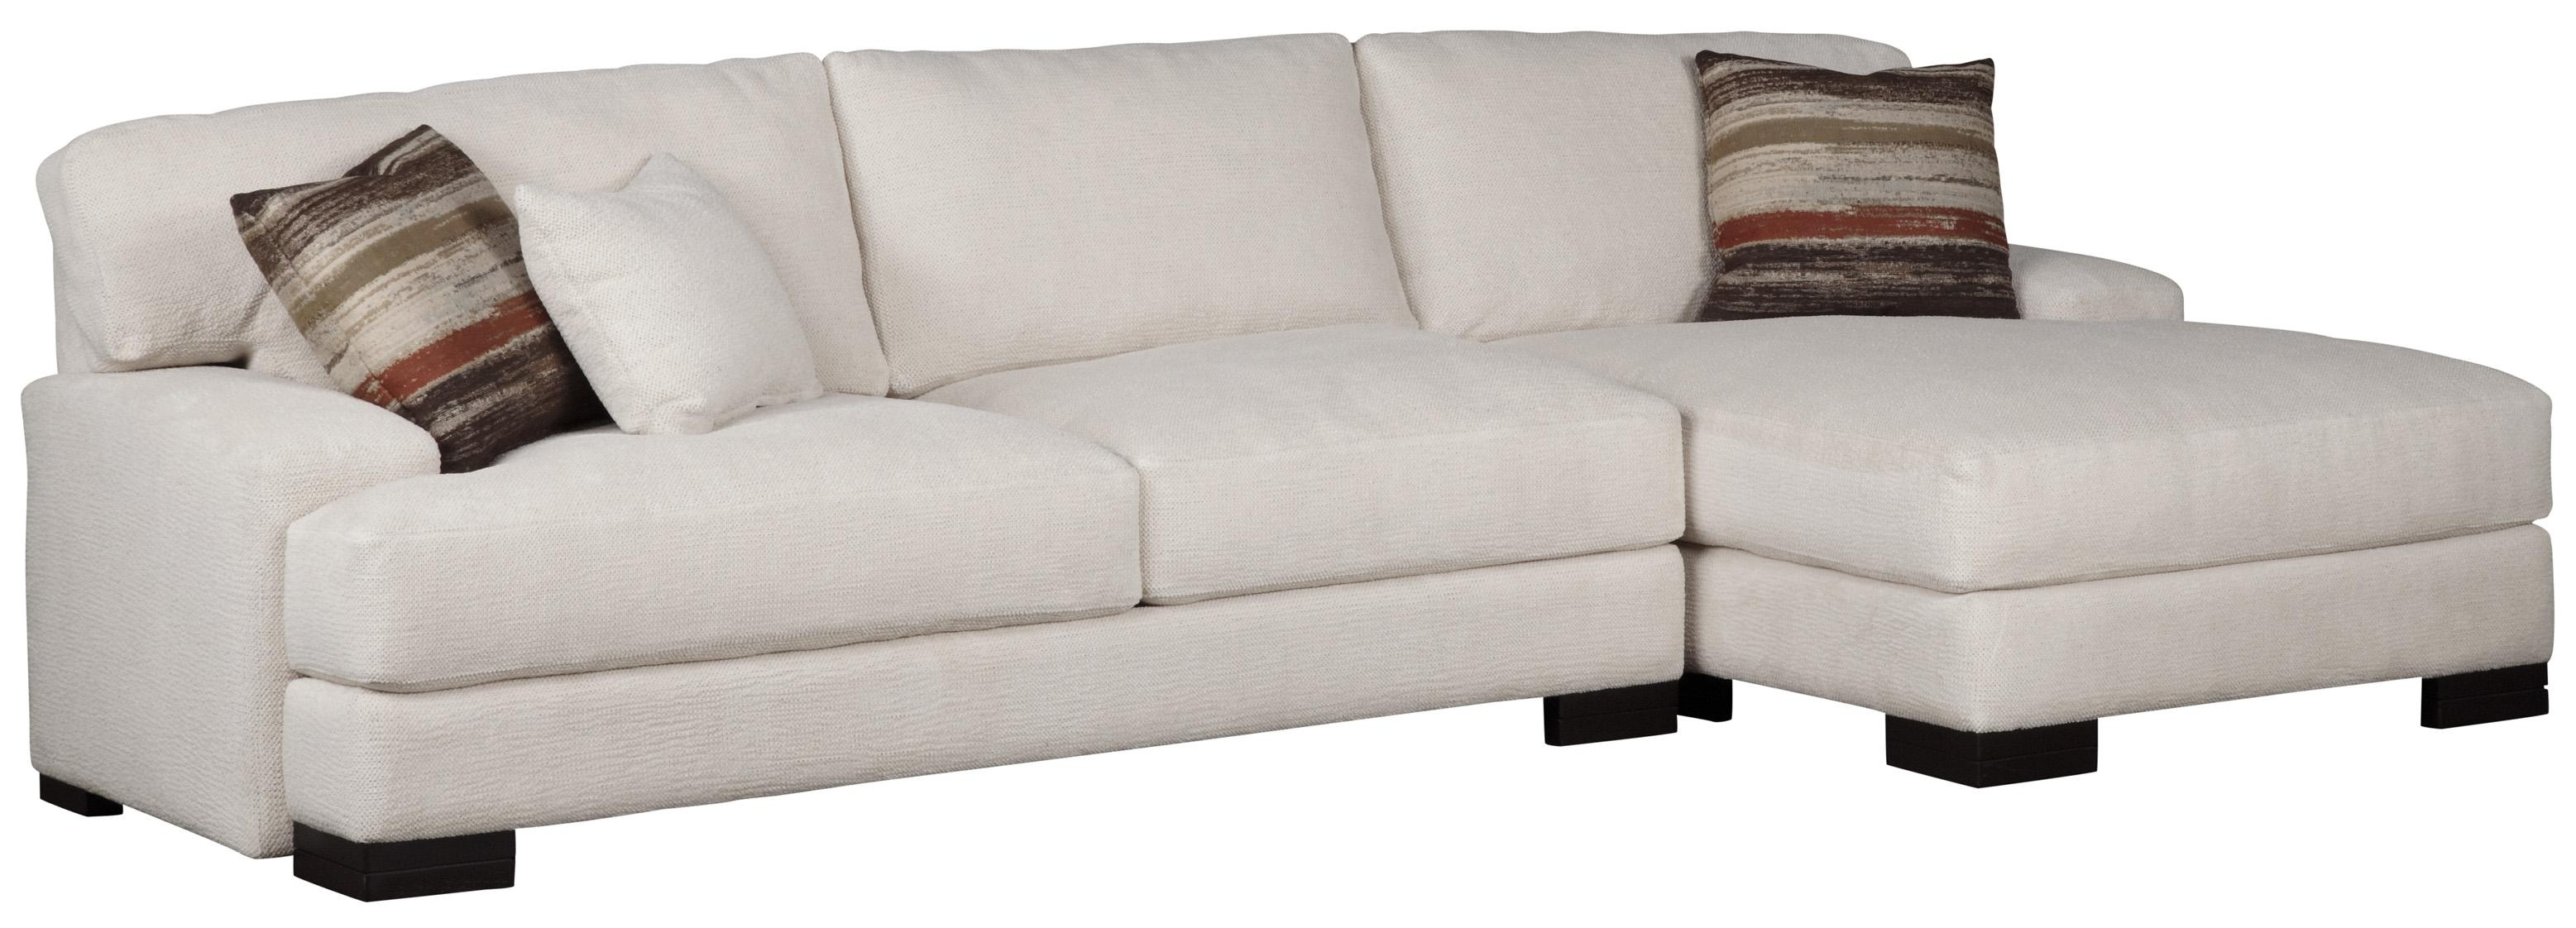 Jonathan Louis Burton Modern Sectional With Right Chaise | Olinde's with Burton Leather 3 Piece Sectionals With Ottoman